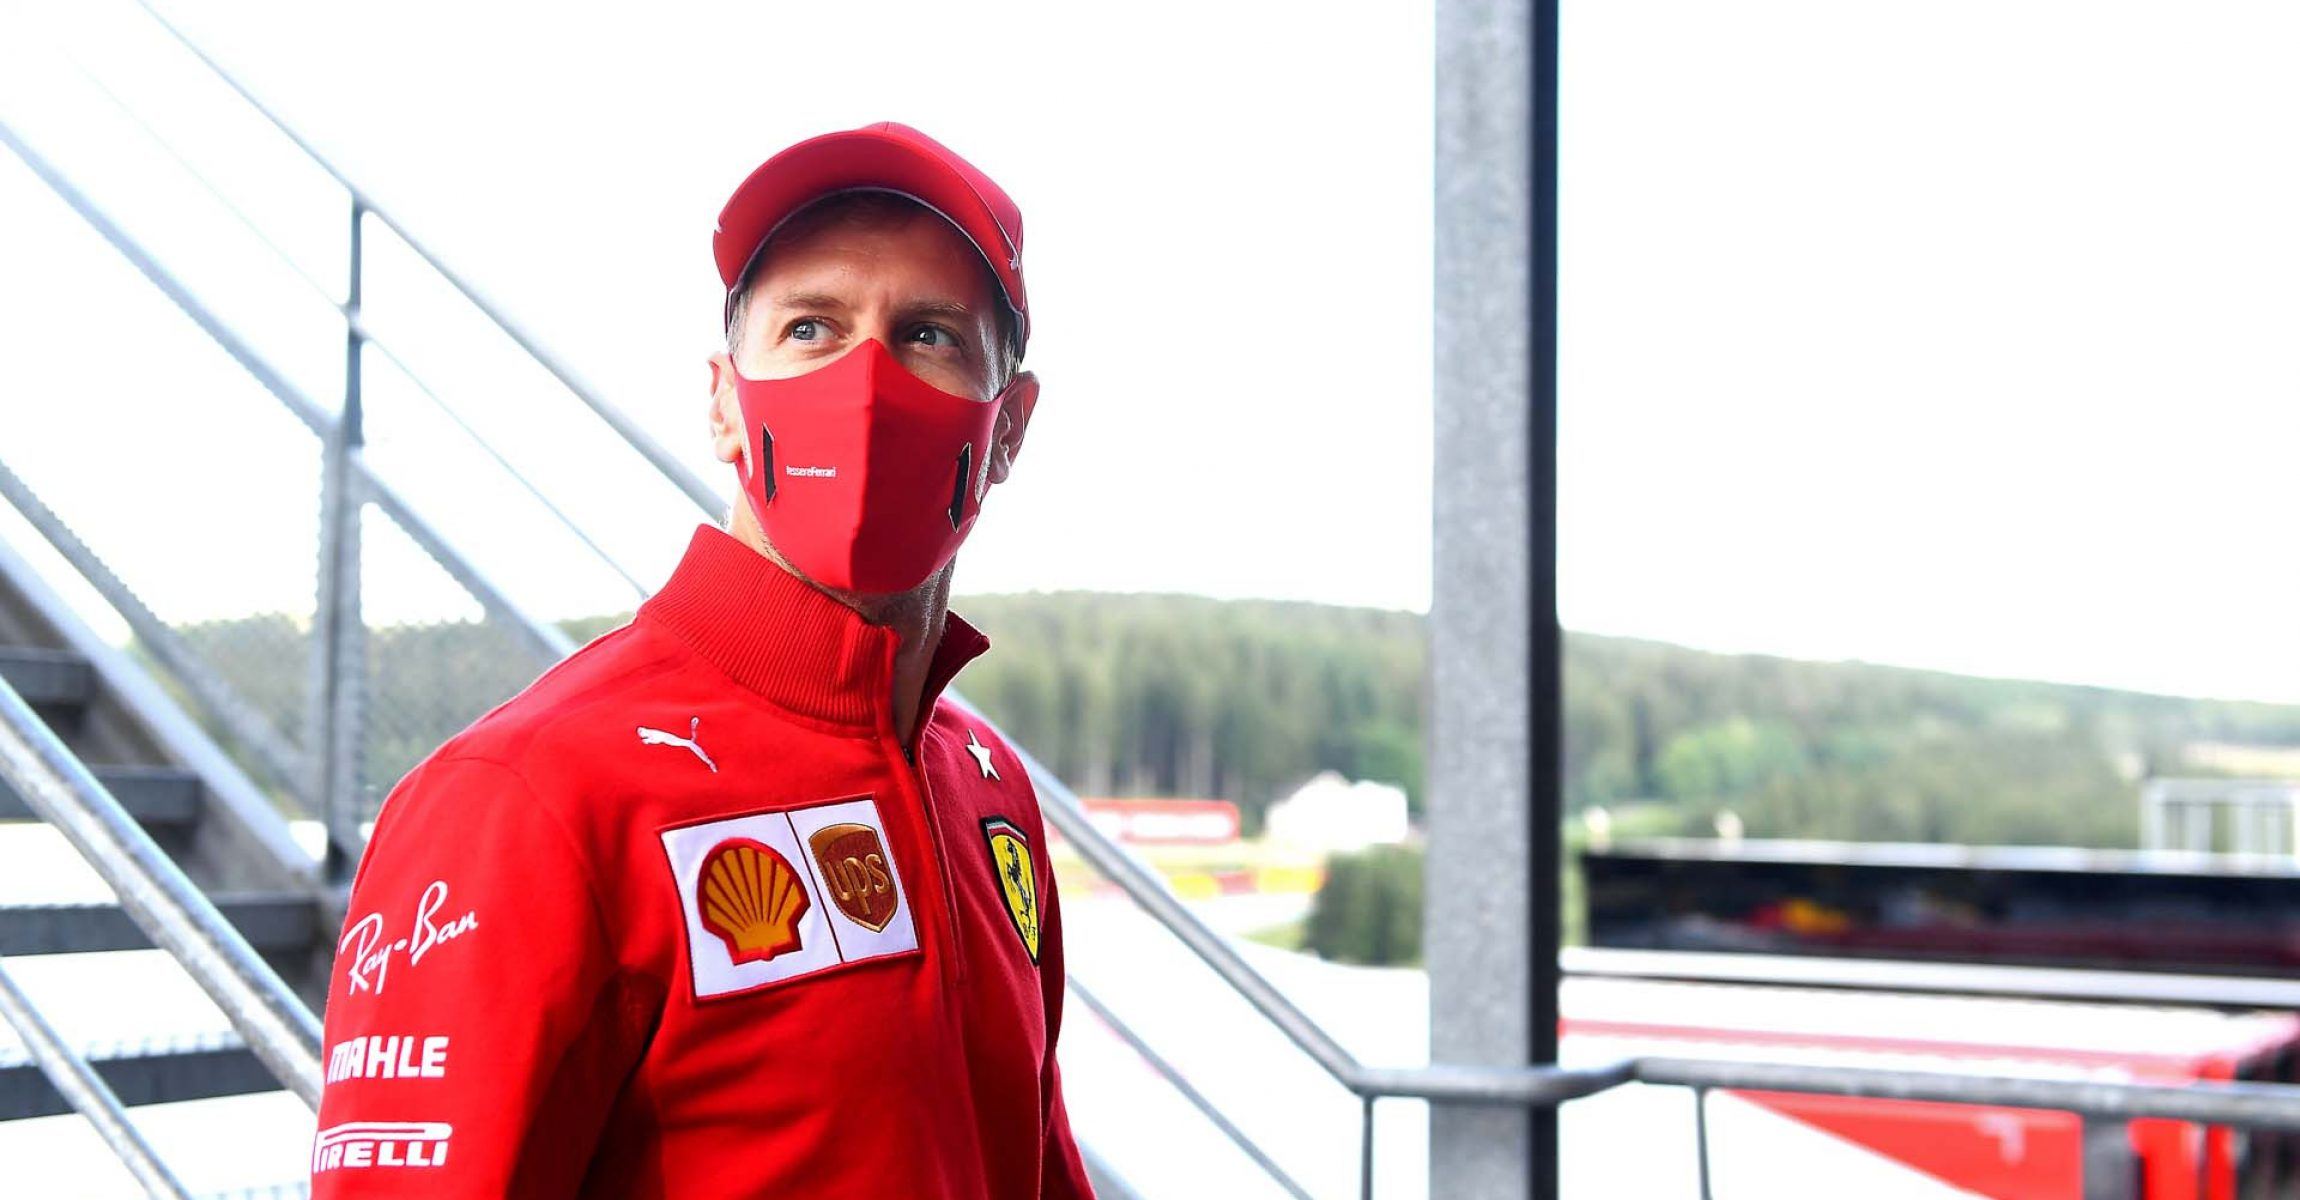 GP BELGIO F1/2020 -  GIOVEDÌ 27/08/2020   credit: @Scuderia Ferrari Press Office Sebastian Vettel